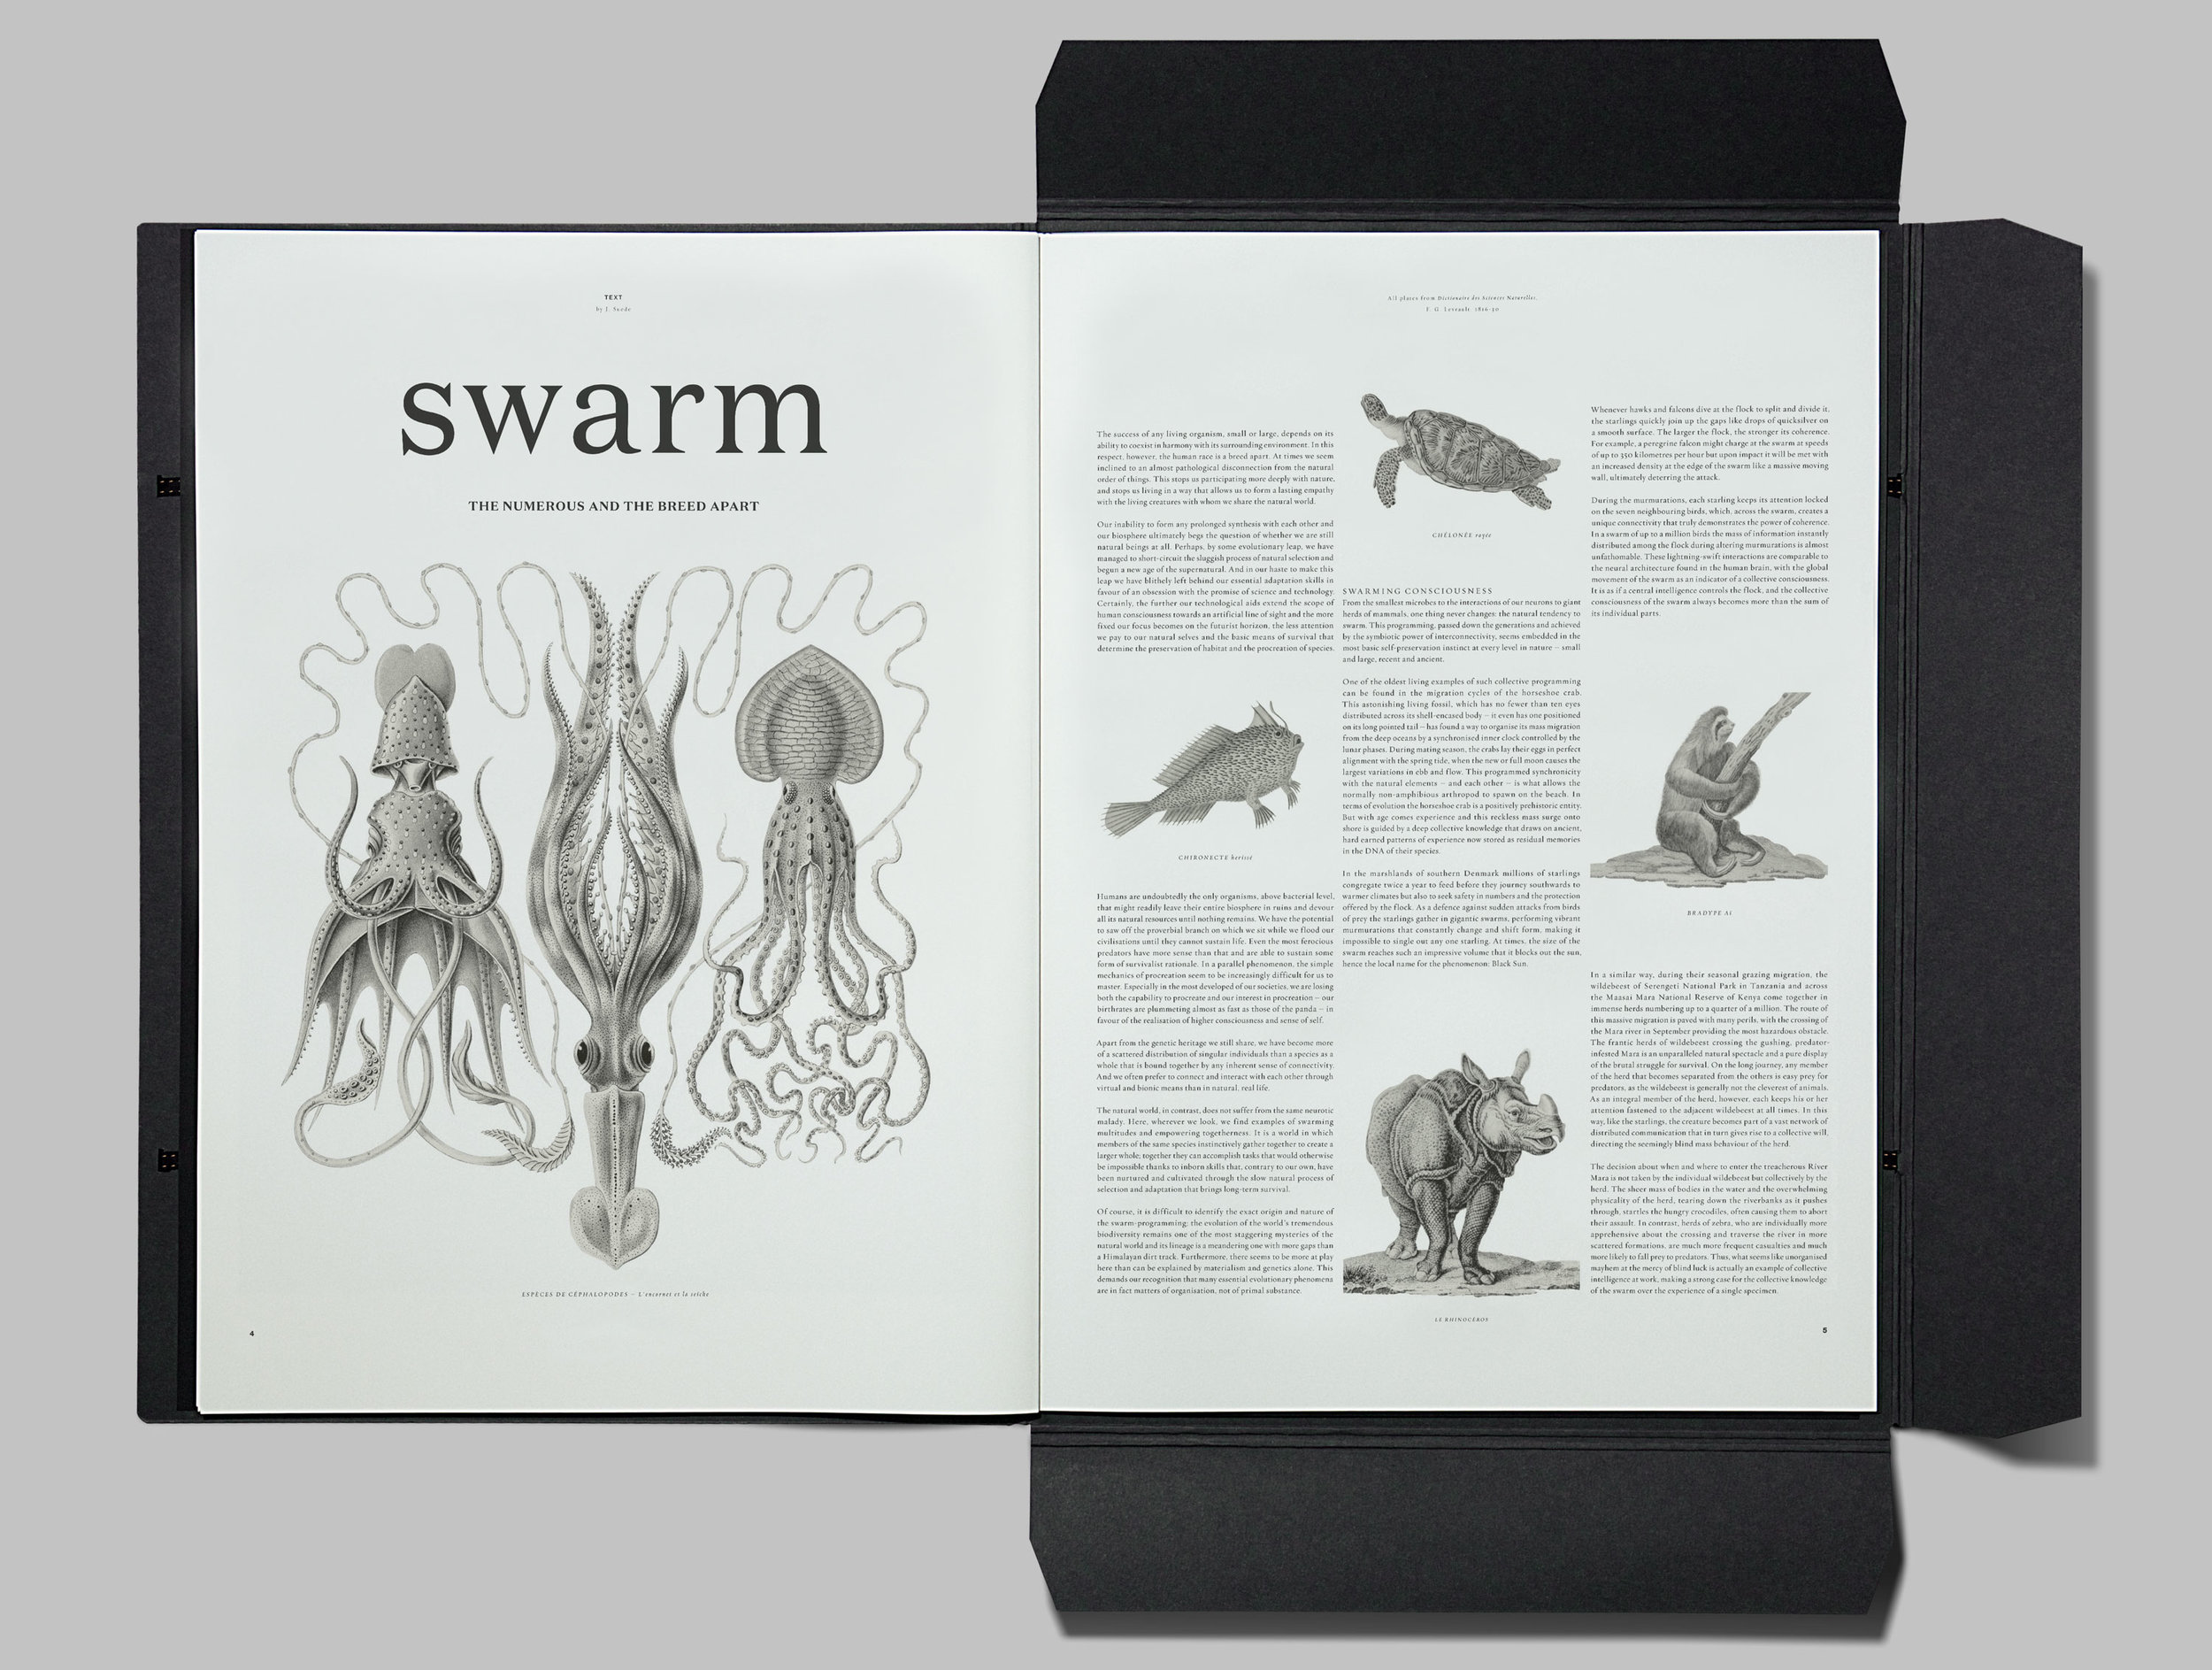 Plethora_Magazine_Issue_6_SWARM_01-kopier.jpg